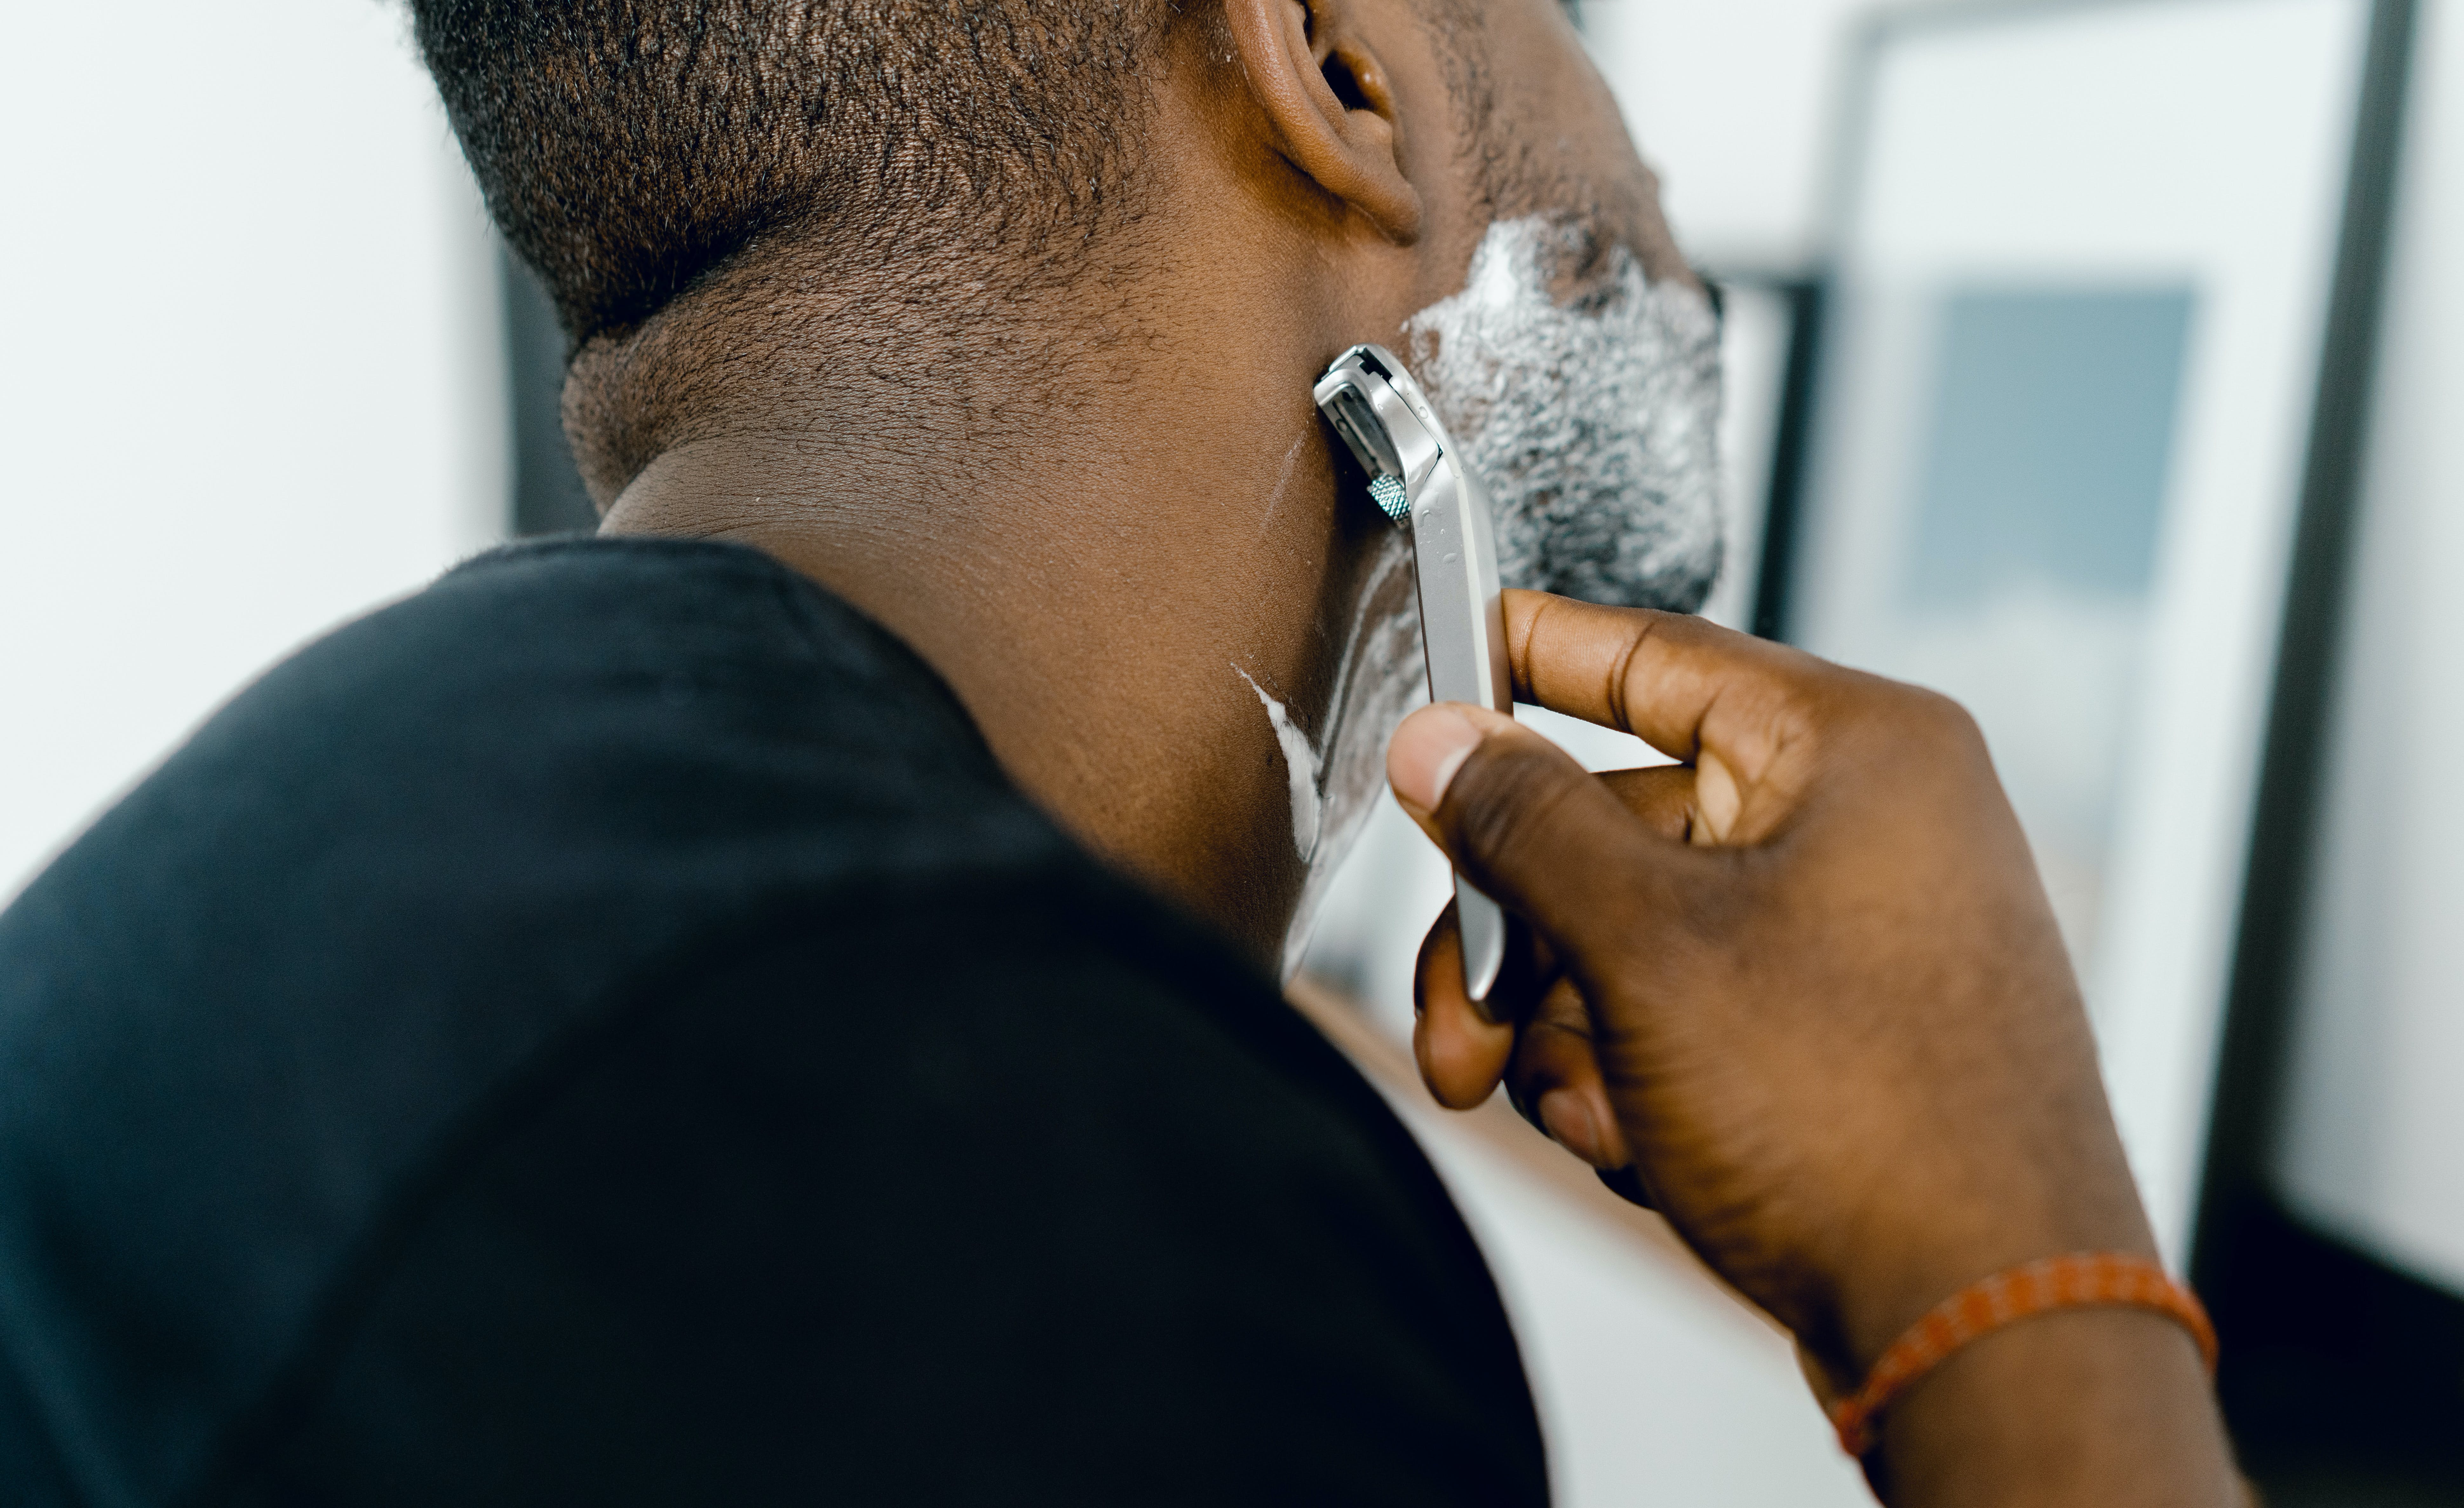 A man shaves himself with shaving cream and a razor.